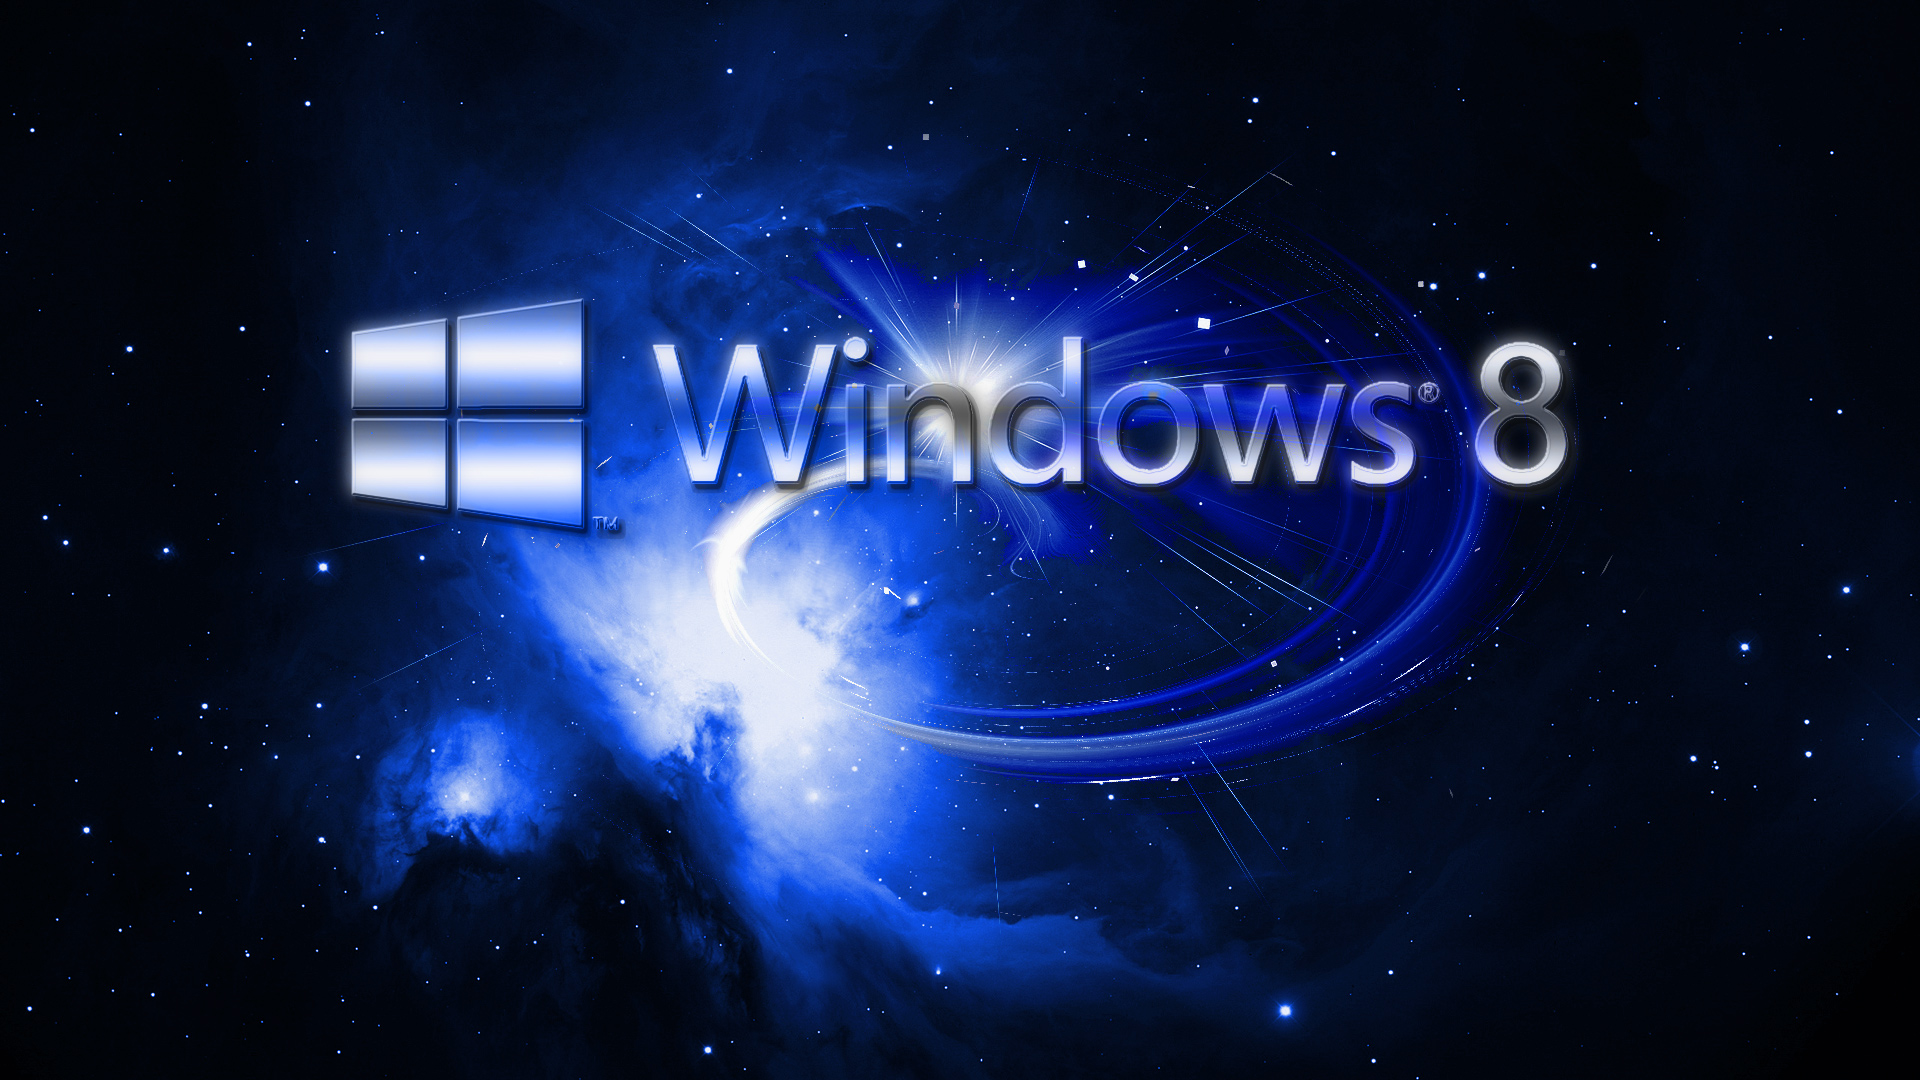 Windows 8 Black Wallpapers 40 Wallpapers Adorable Wallpapers